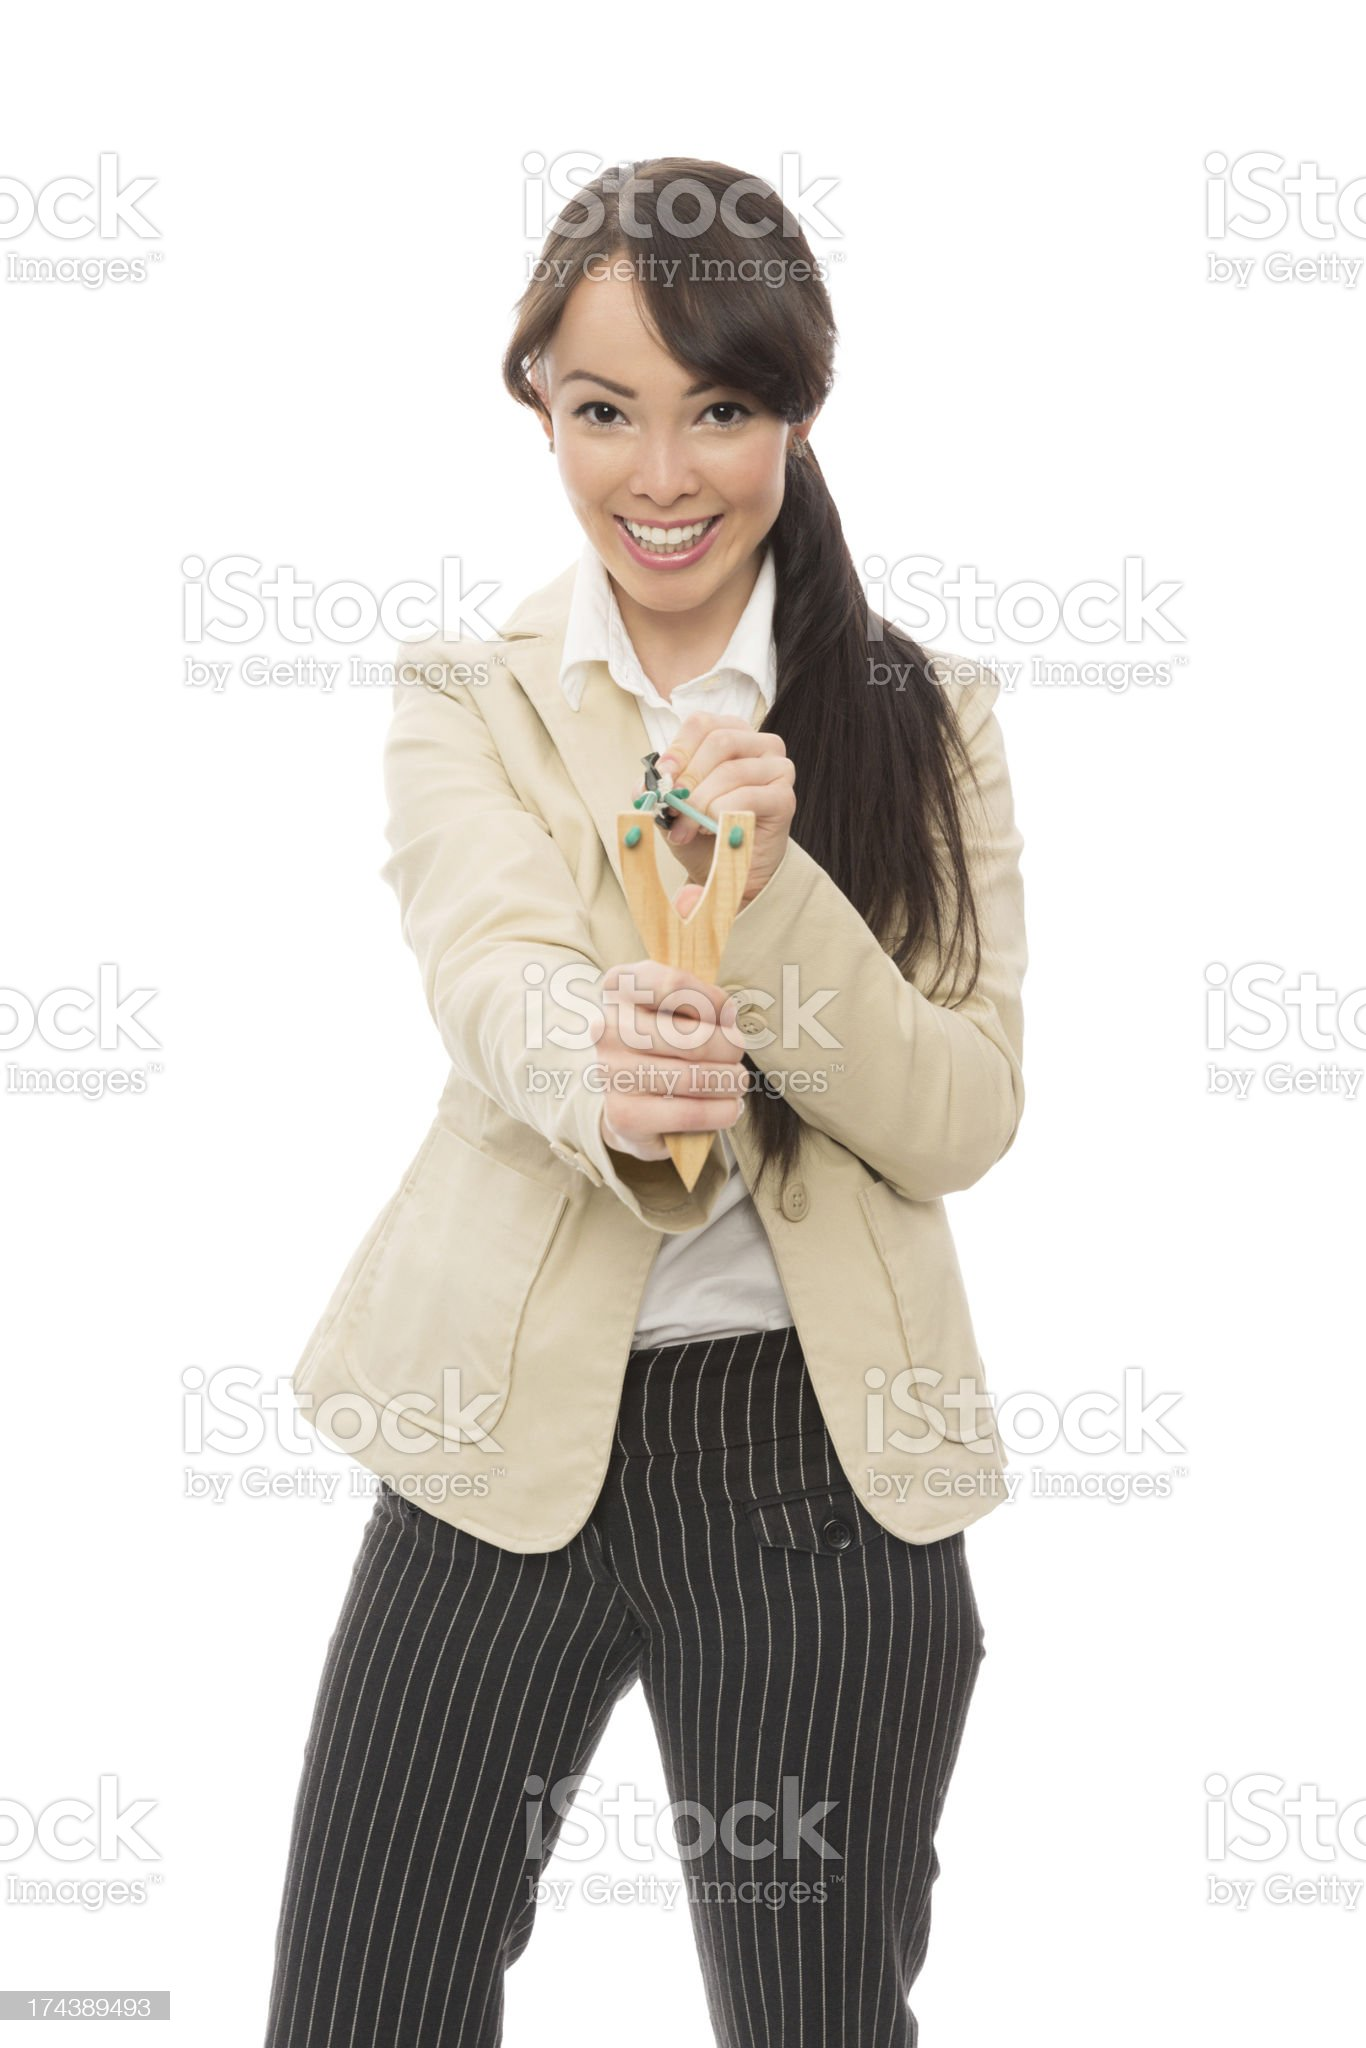 Young Asian Businesswoman Aiming With Slingshot royalty-free stock photo